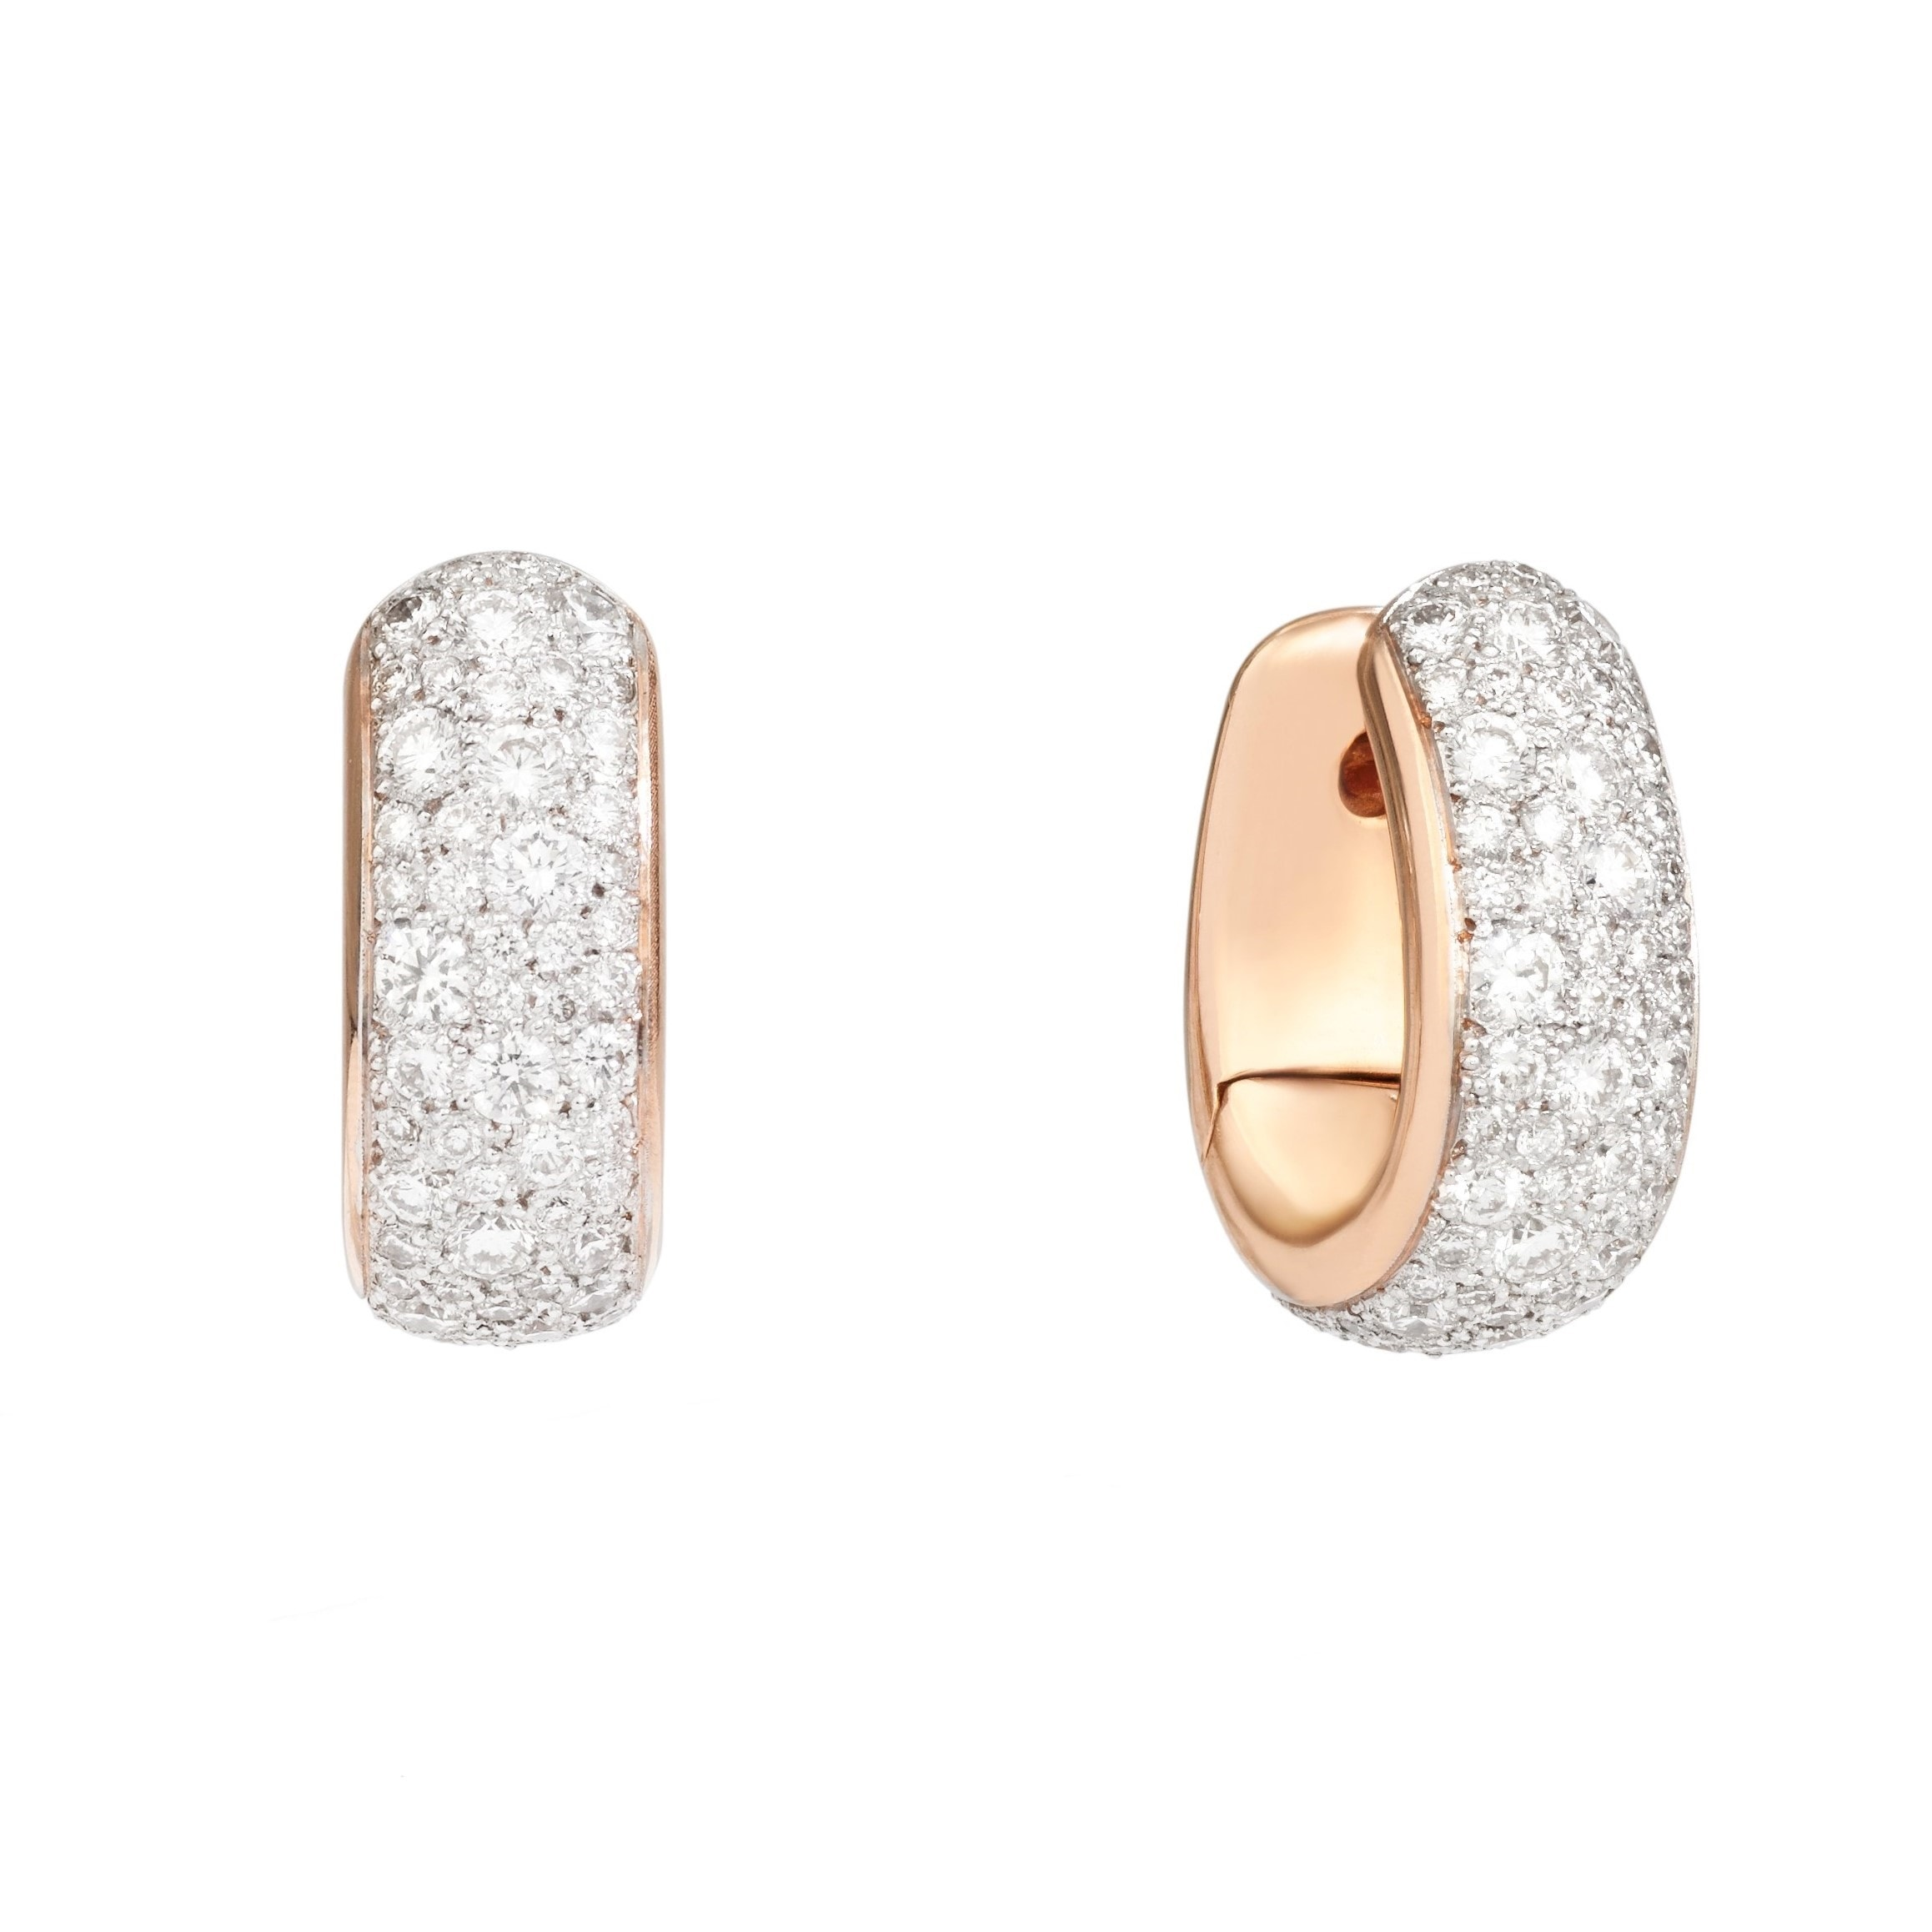 Pomellato Iconica earrings on a white background